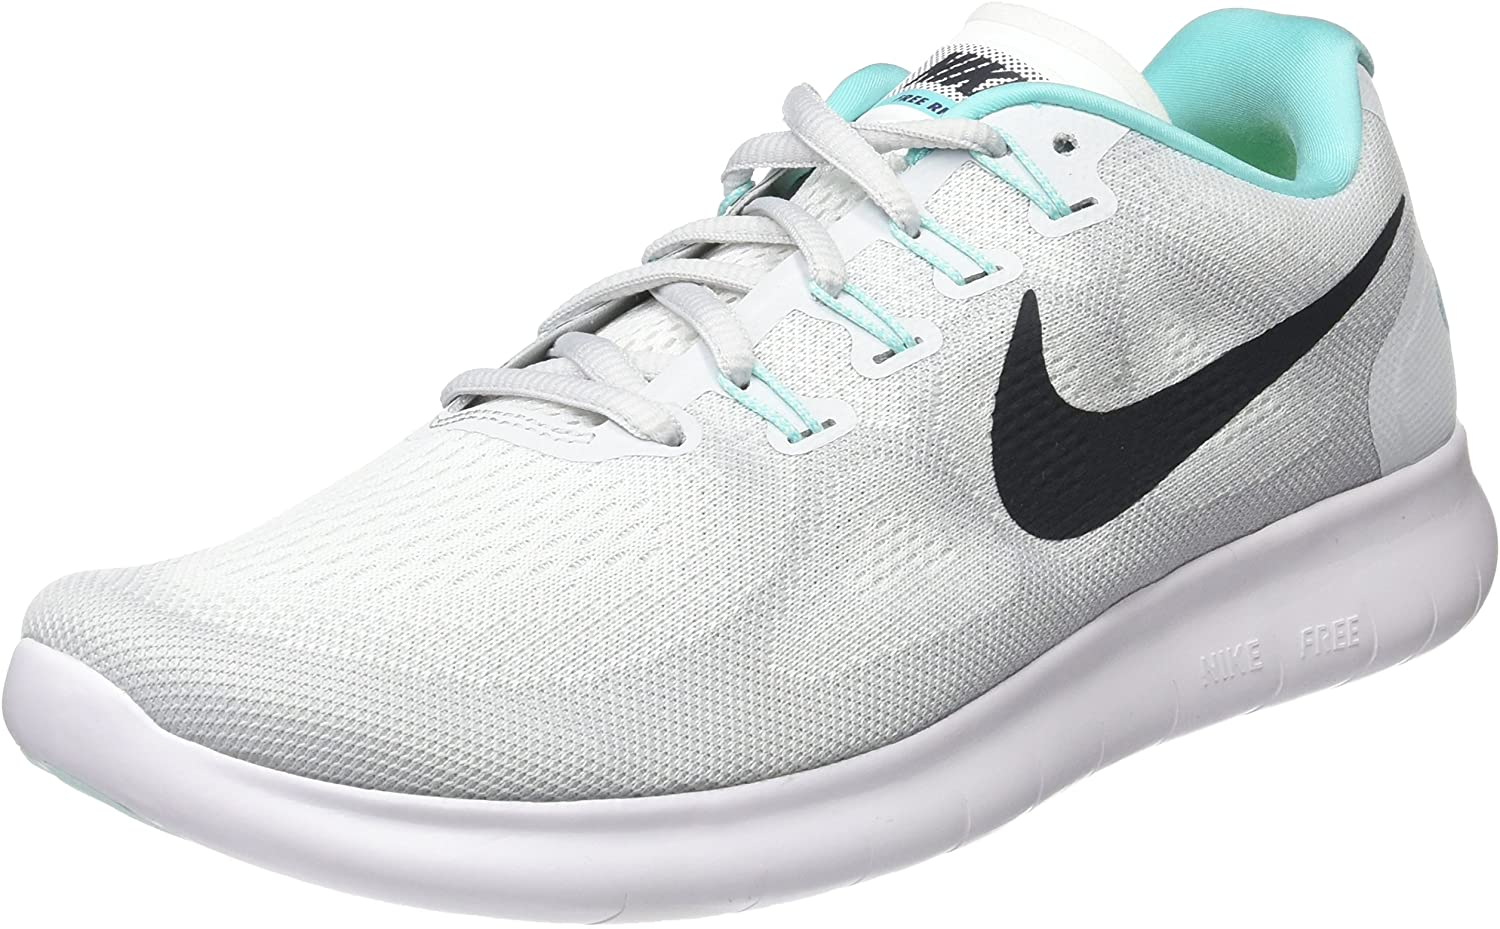 Nike Women S Free Rn 2017 Running Shoe White Anthracite Pure Platinum 6 Road Running